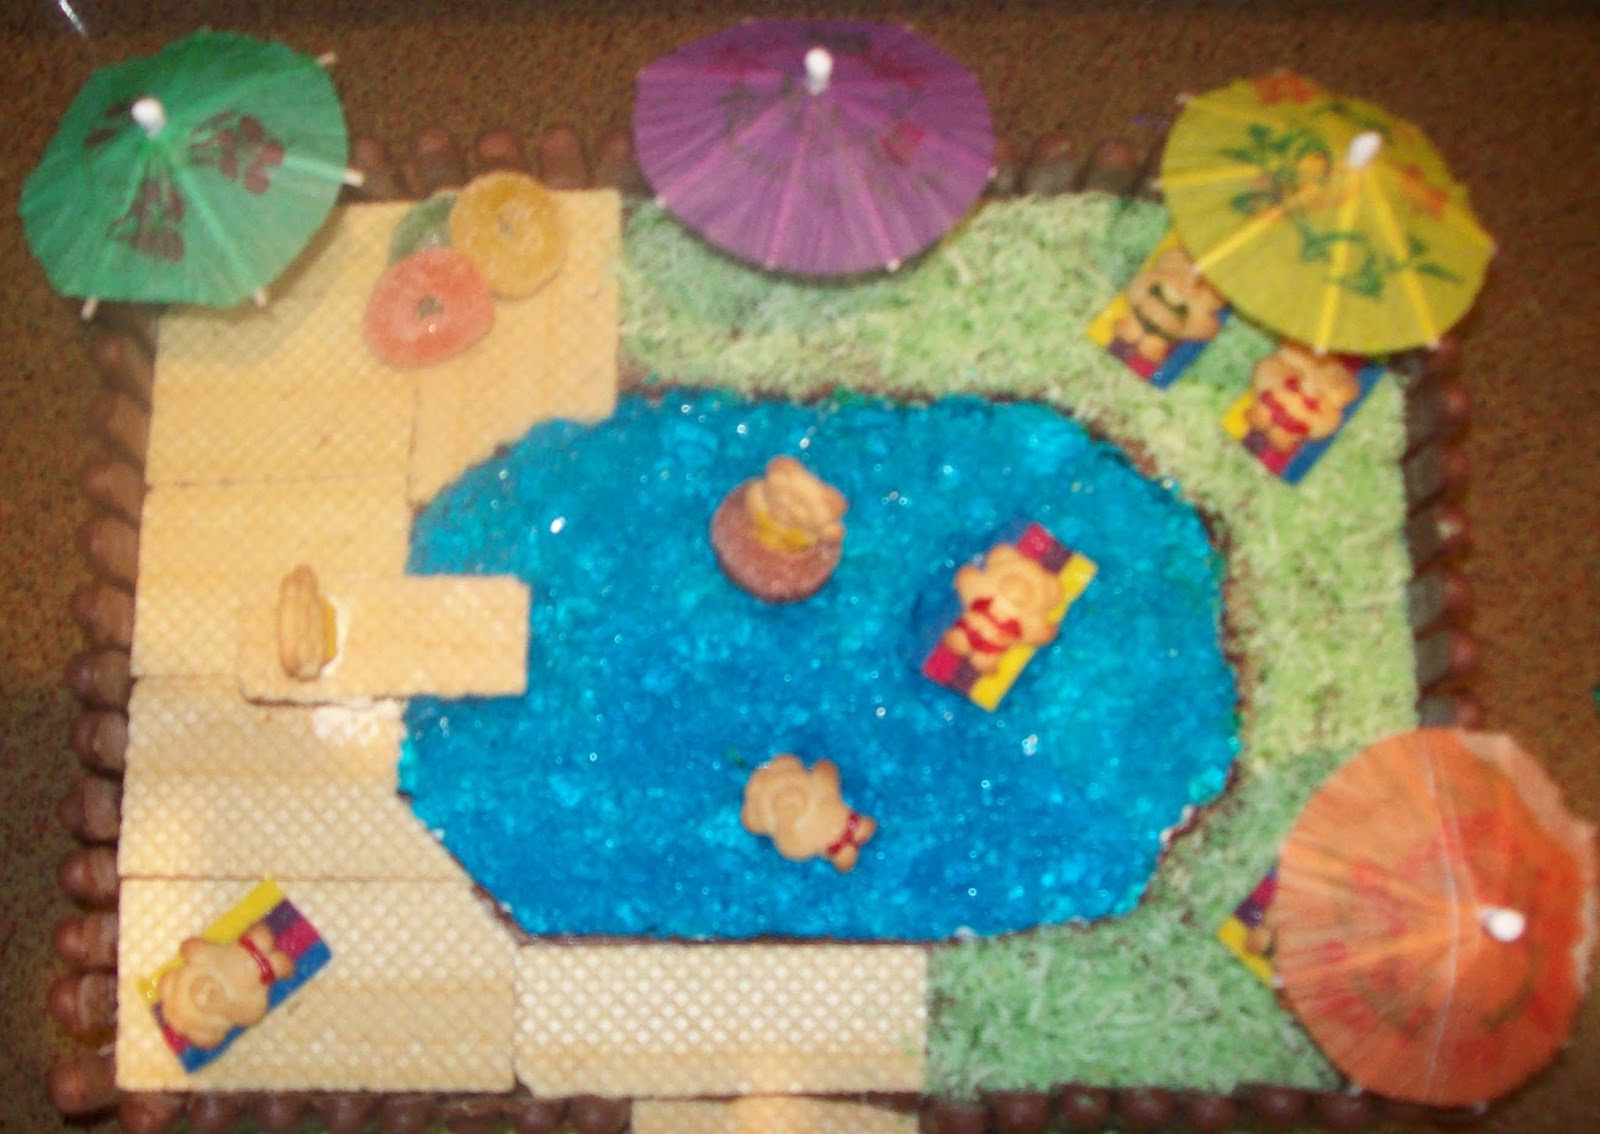 madnsneaky built: Welcome with cake, a pool party and ...